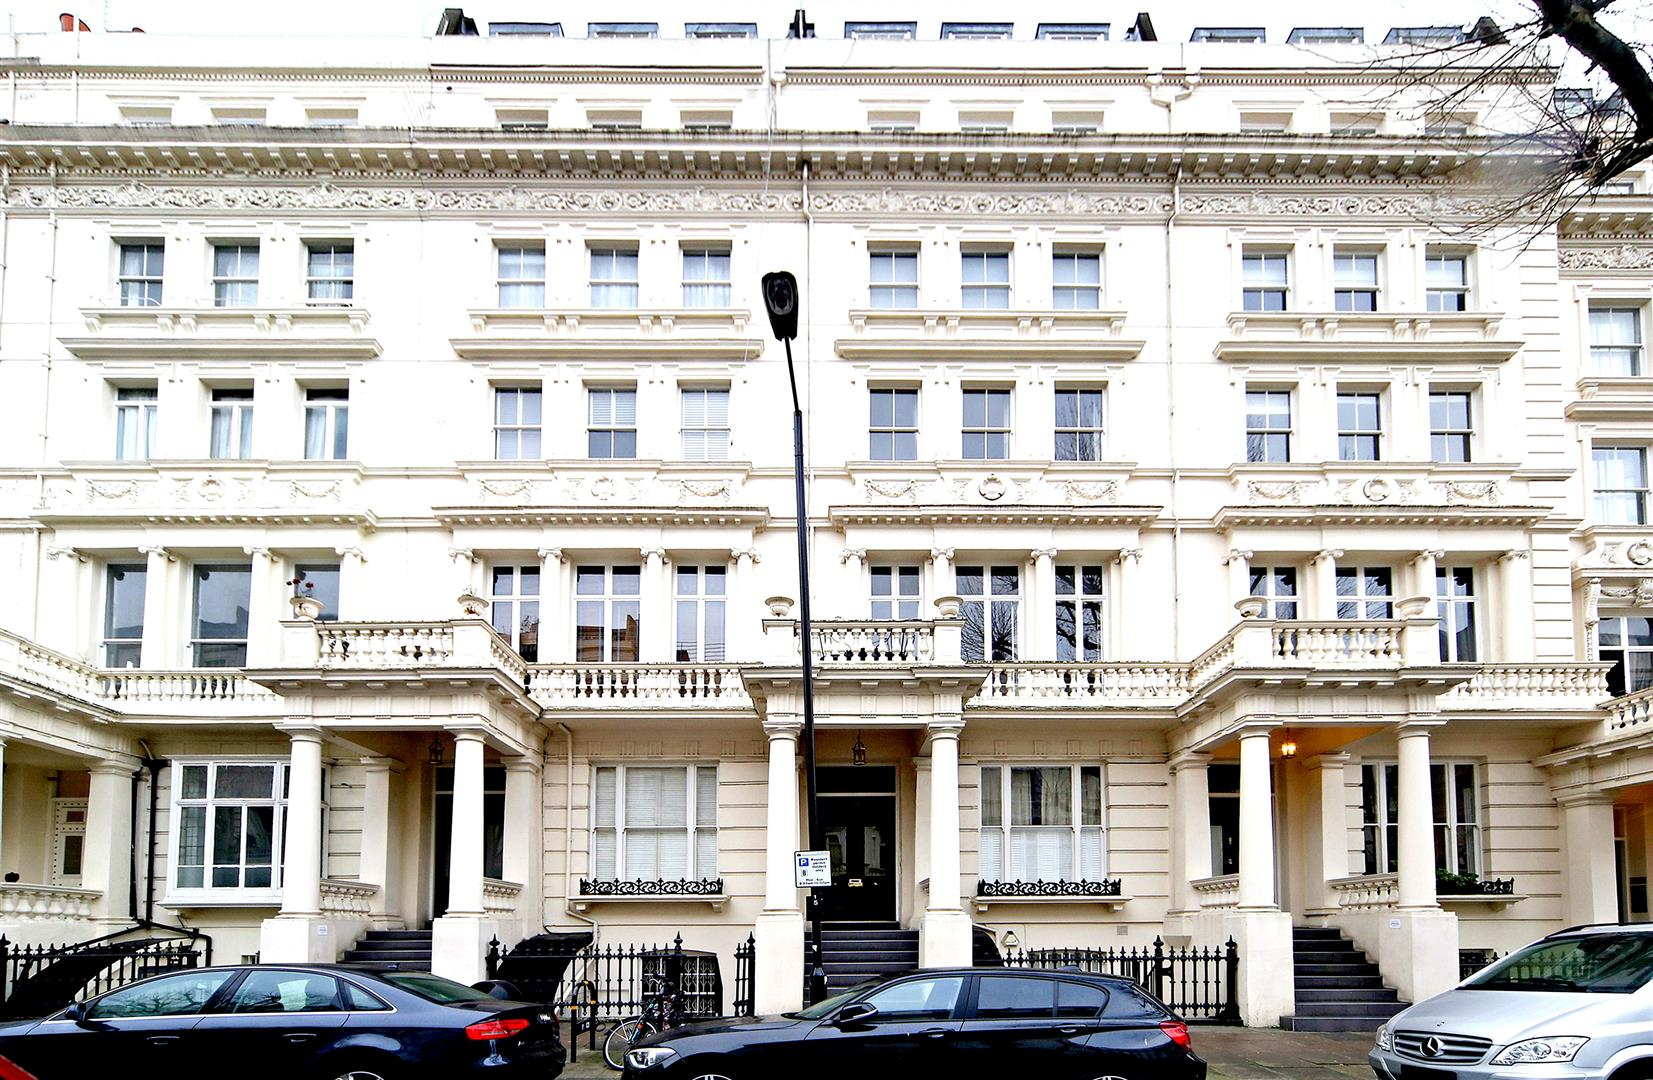 Inverness terrace london w2 2 bed flat w2 3jr for 1 inverness terrace hyde park london w2 3jp